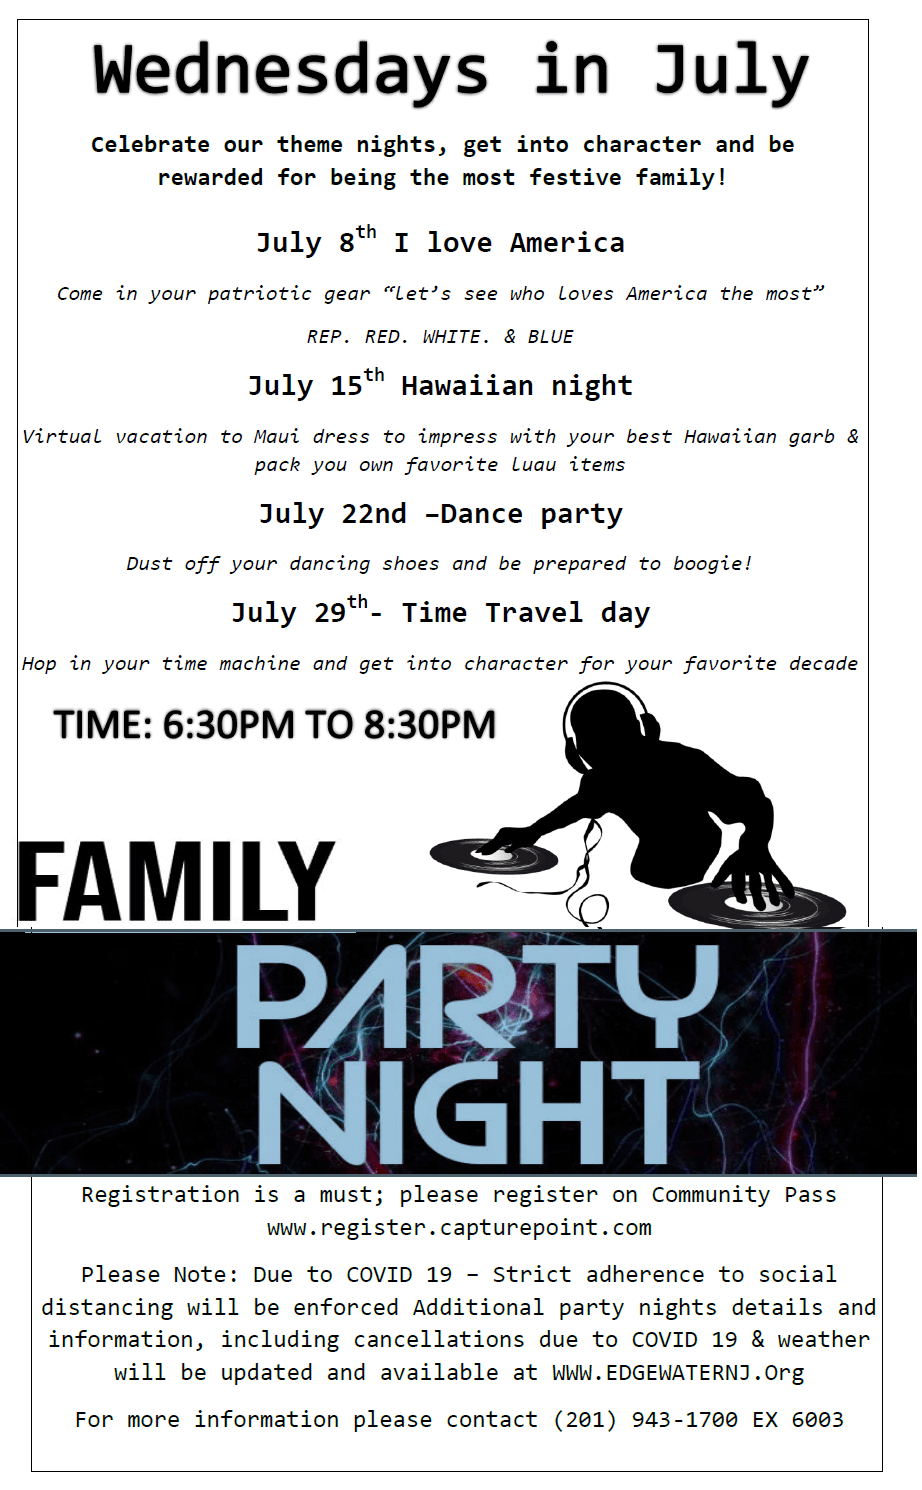 family party night